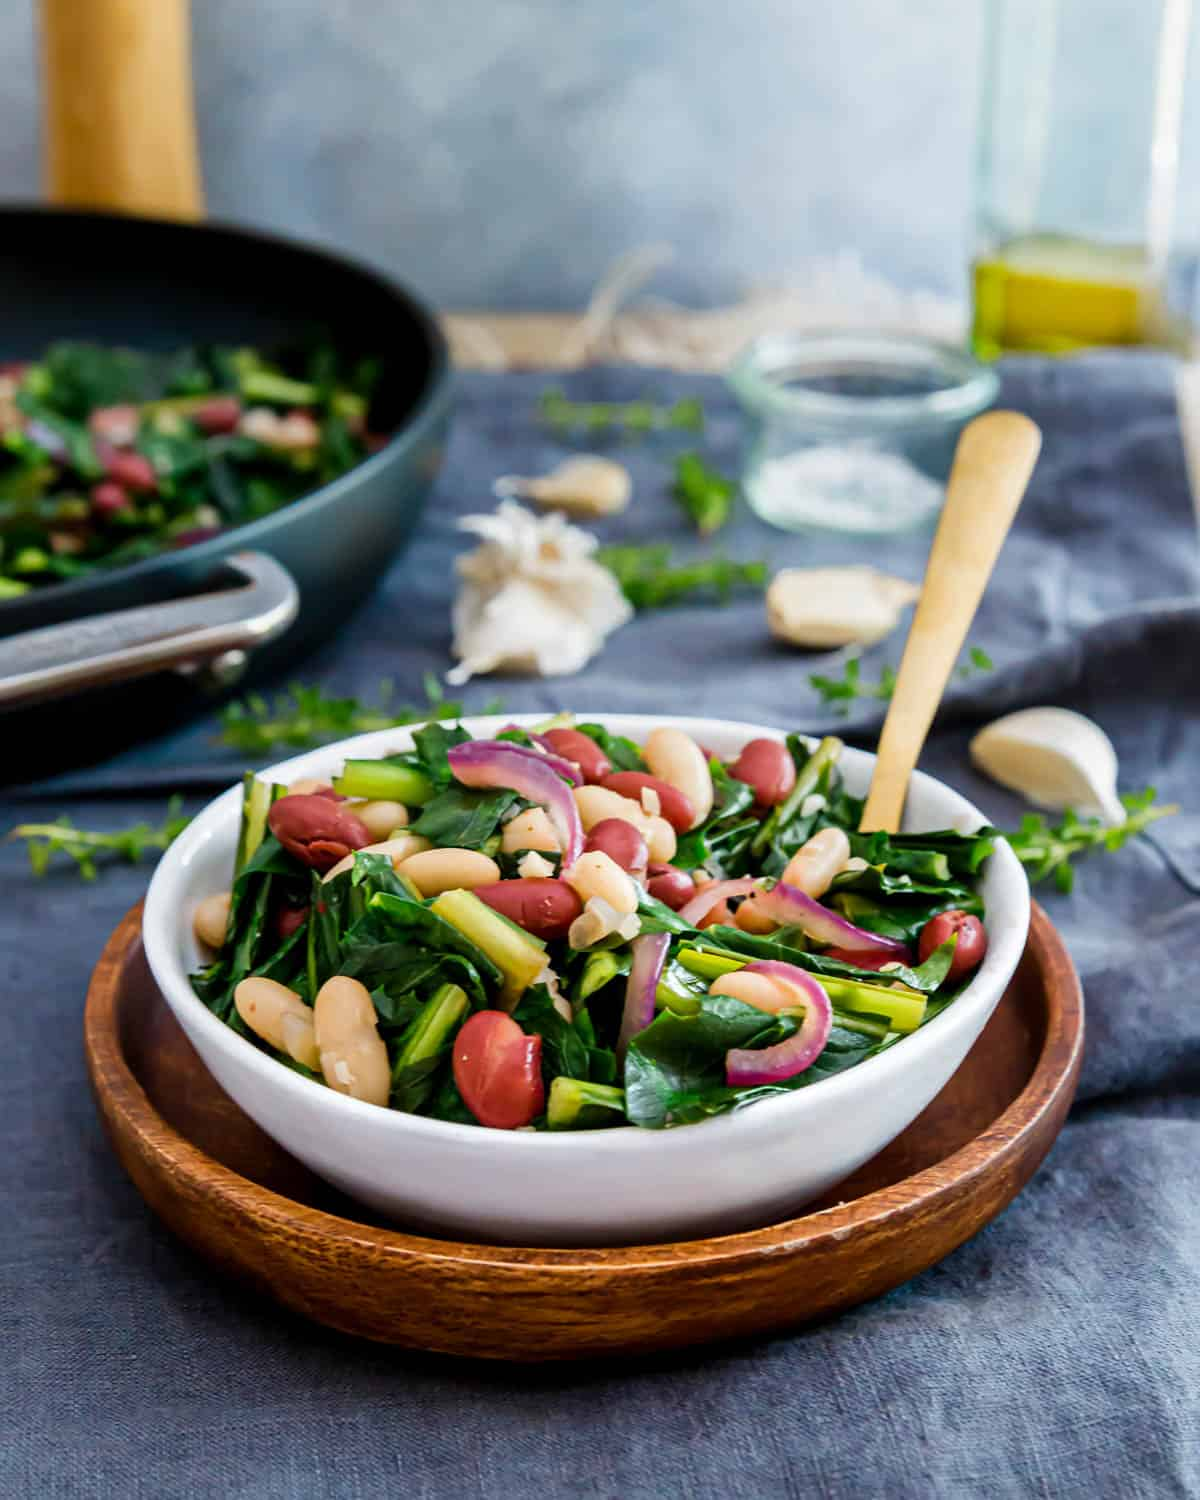 Enjoy nutritious dandelion greens in this easy meatless skillet recipe with beans and red onions.